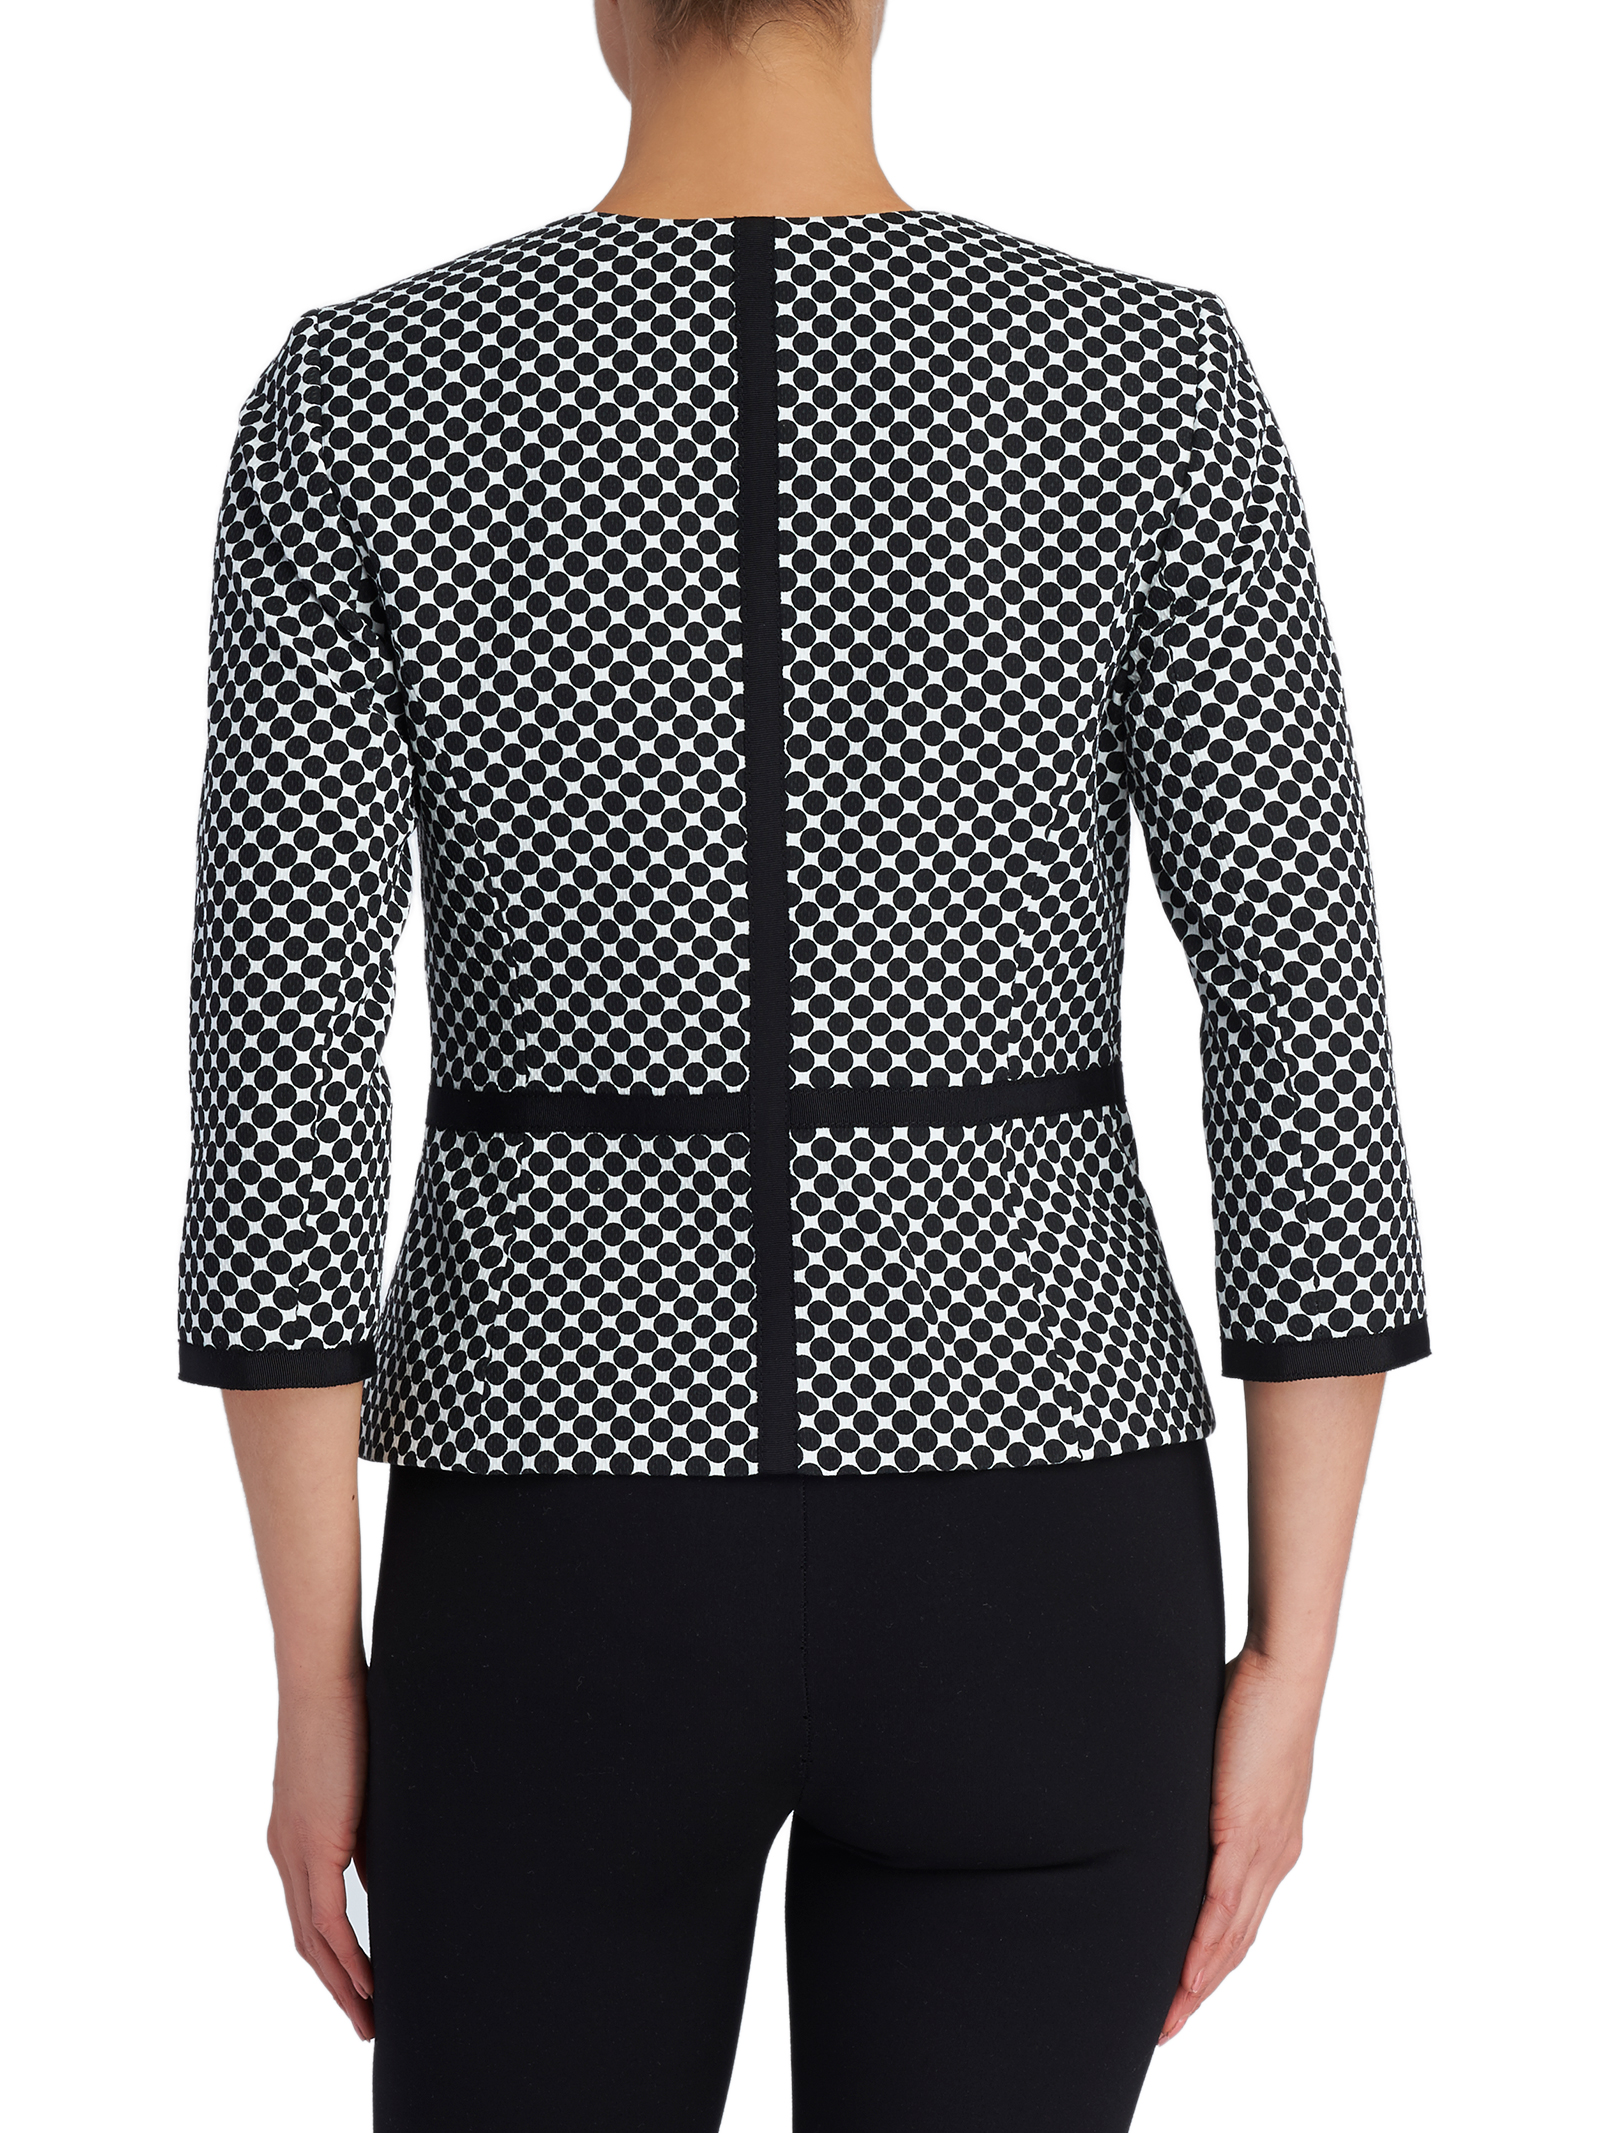 Grosgrain Trim Dot Print Jacket, White, hi-res